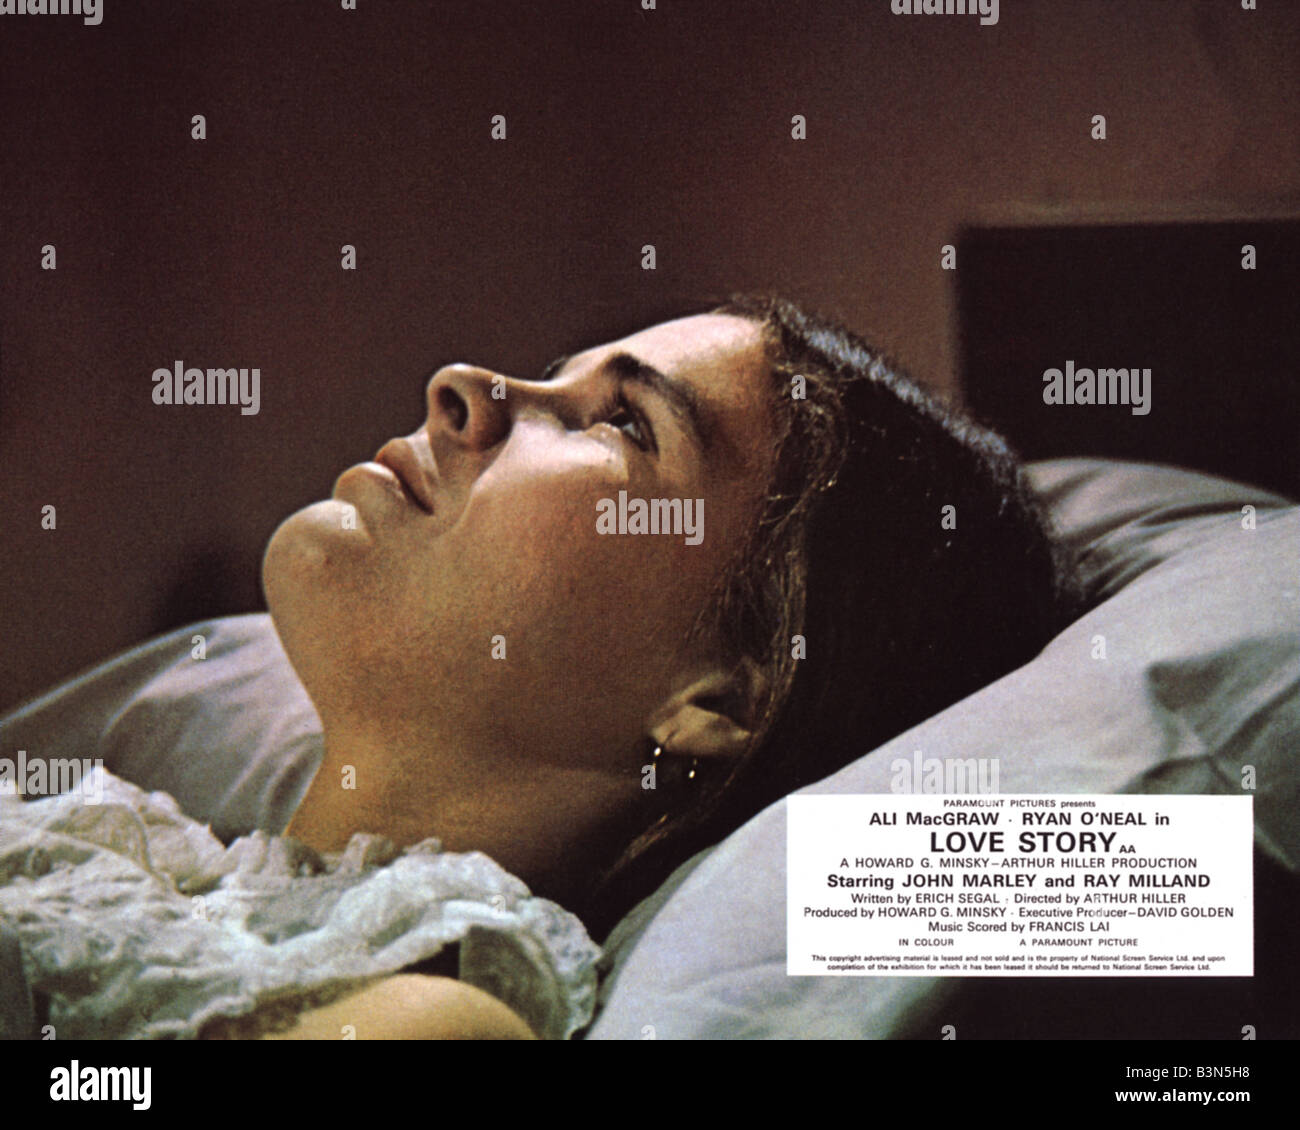 LOVE STORY  1970 Paramount film with Ali MacGraw - Stock Image